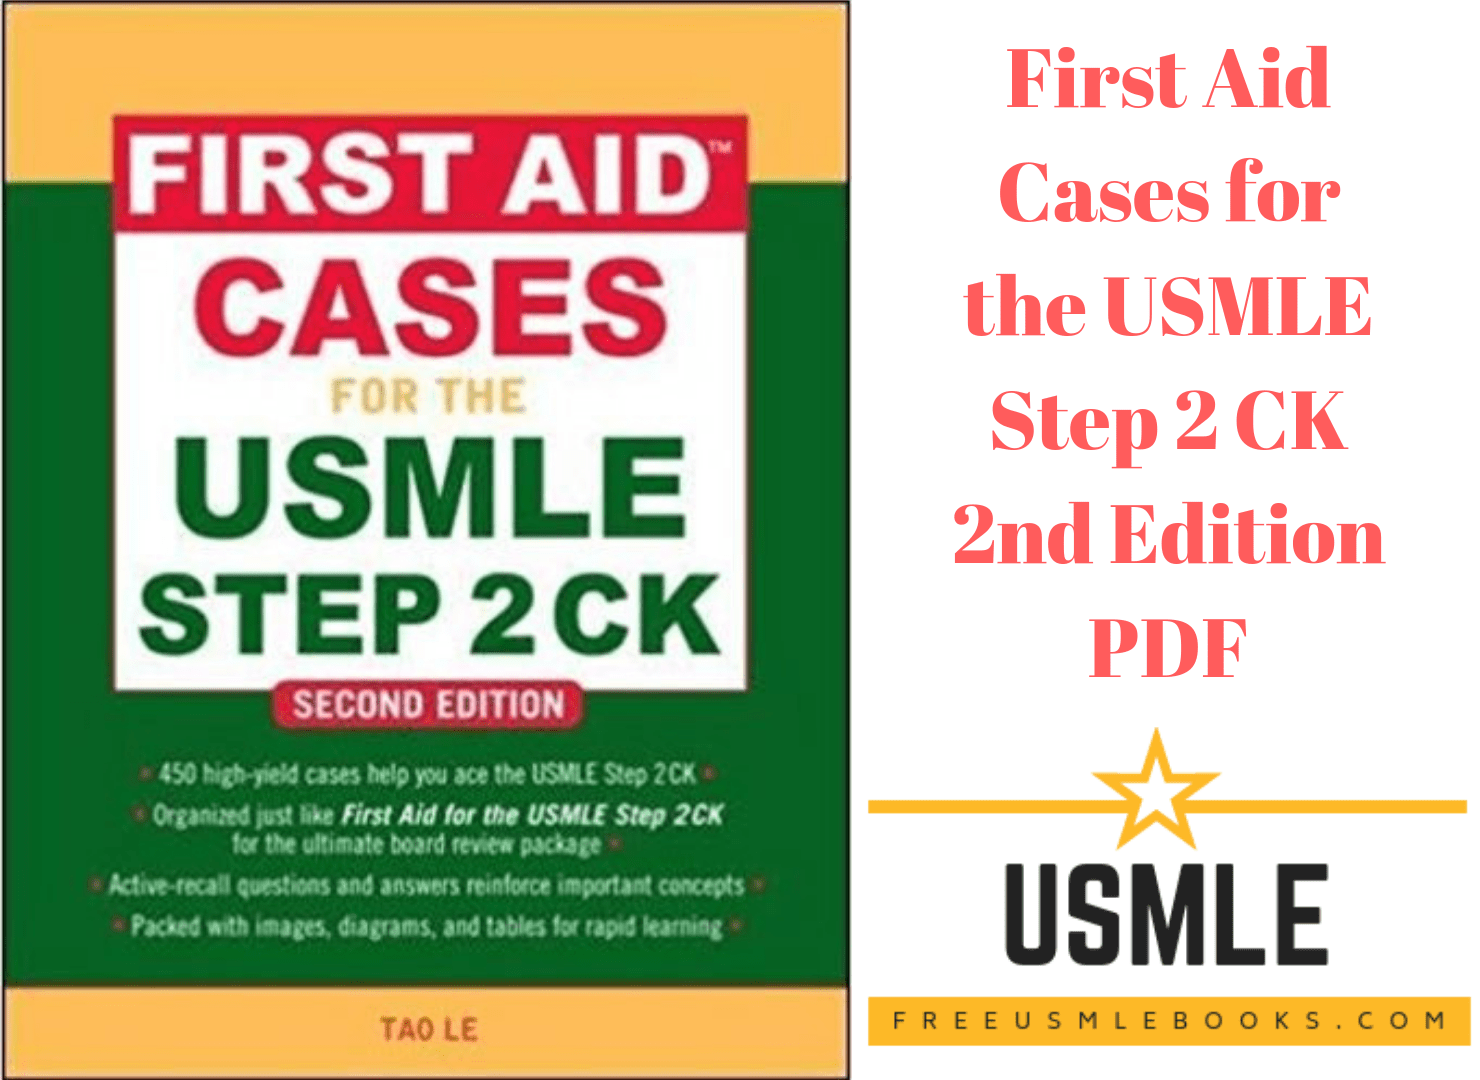 first aid cases usmle step 2 ck pdf free download